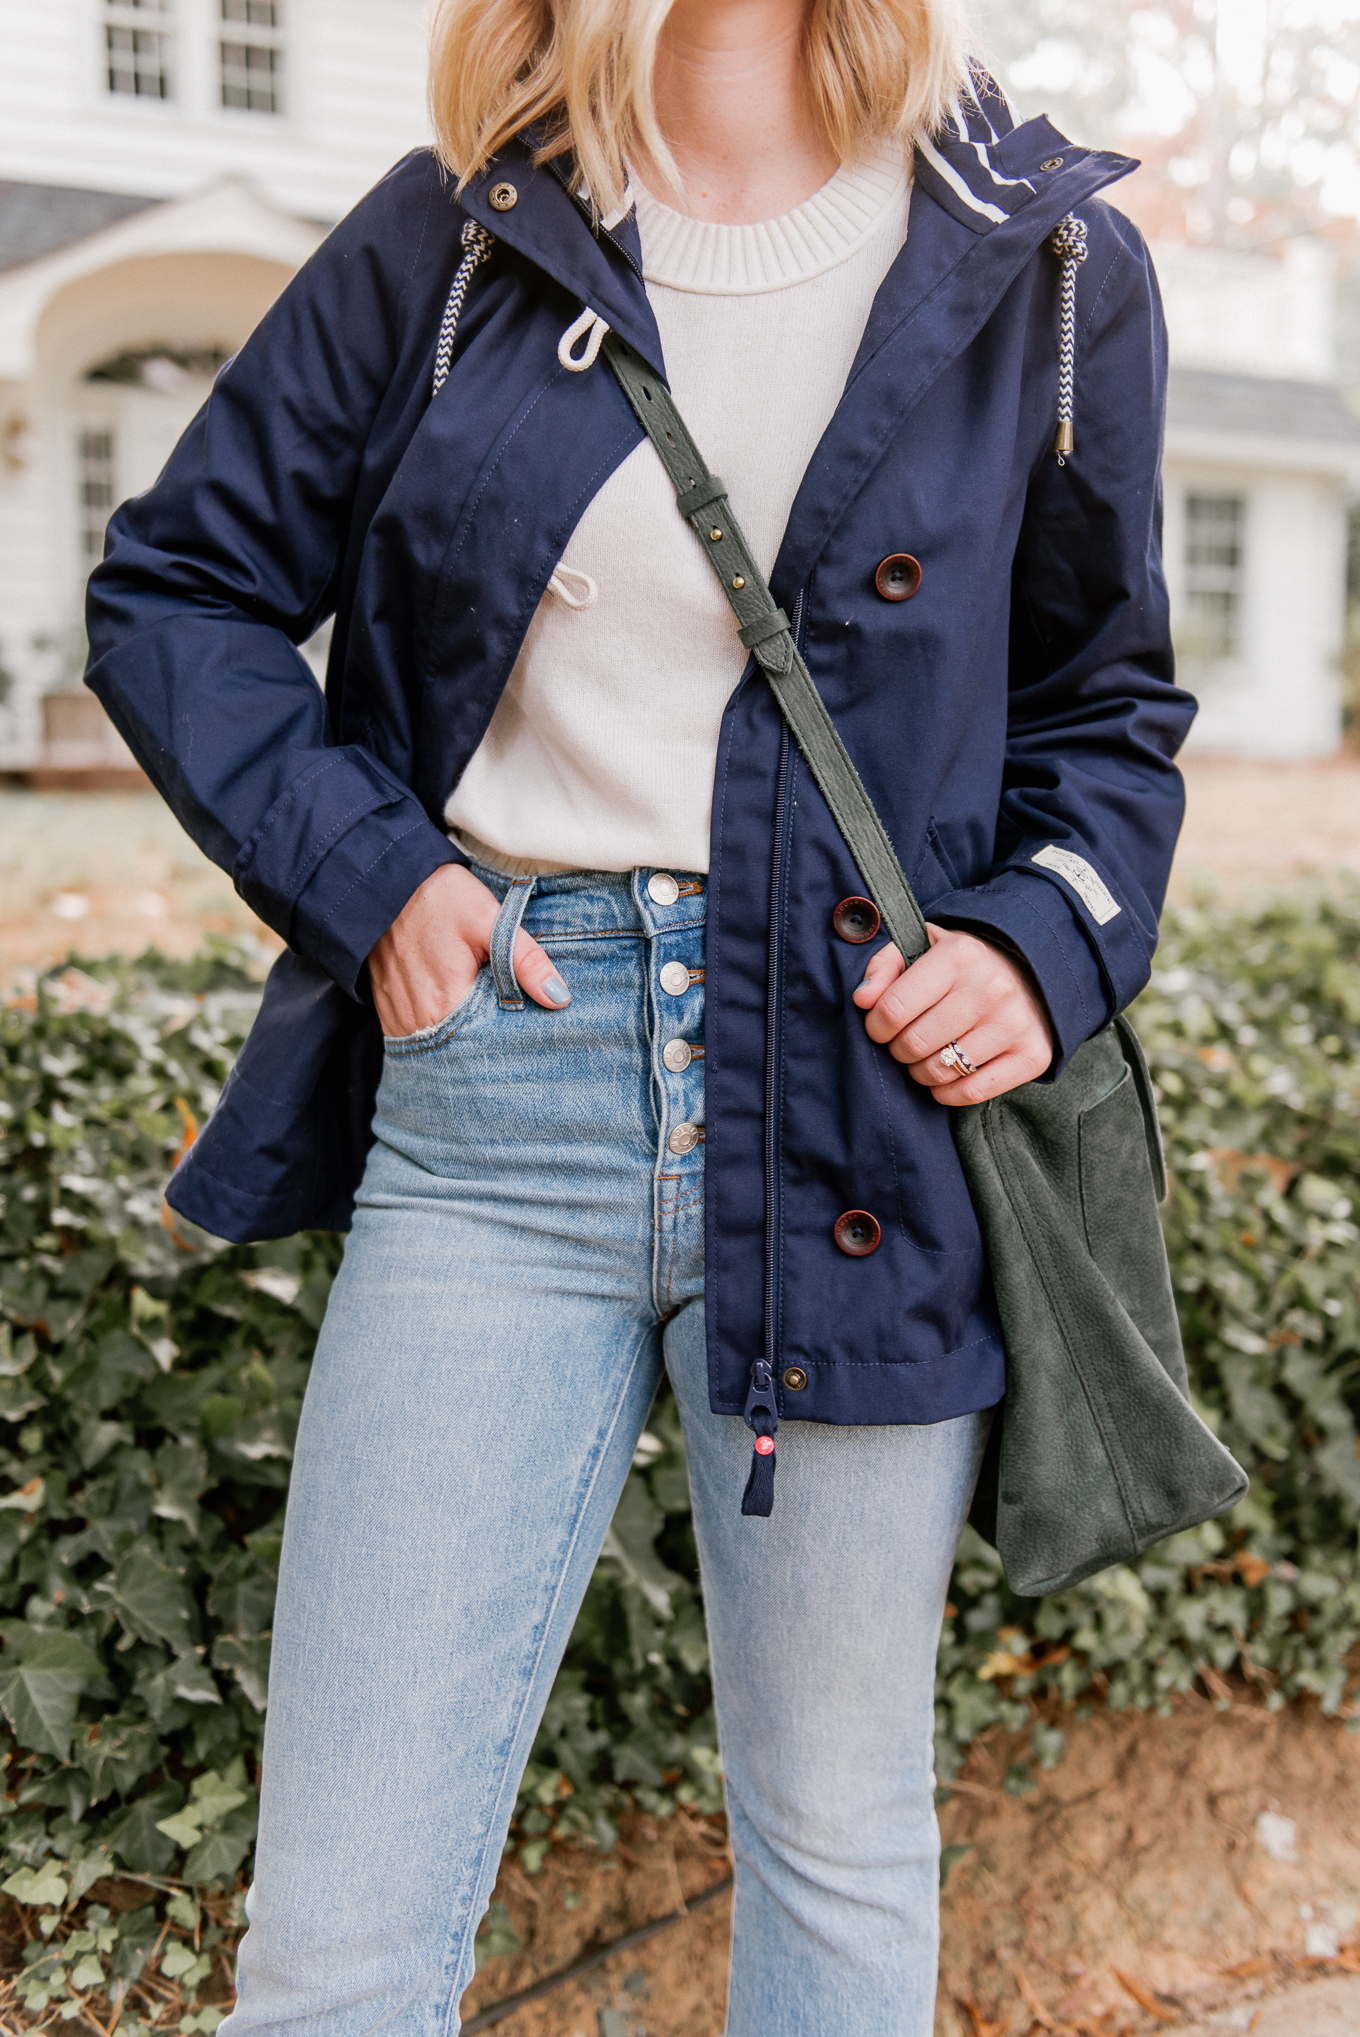 Fall Rain Jacket | The Perfect Medium Weight Rain Jacket, Button Front Jeans | Louella Reese